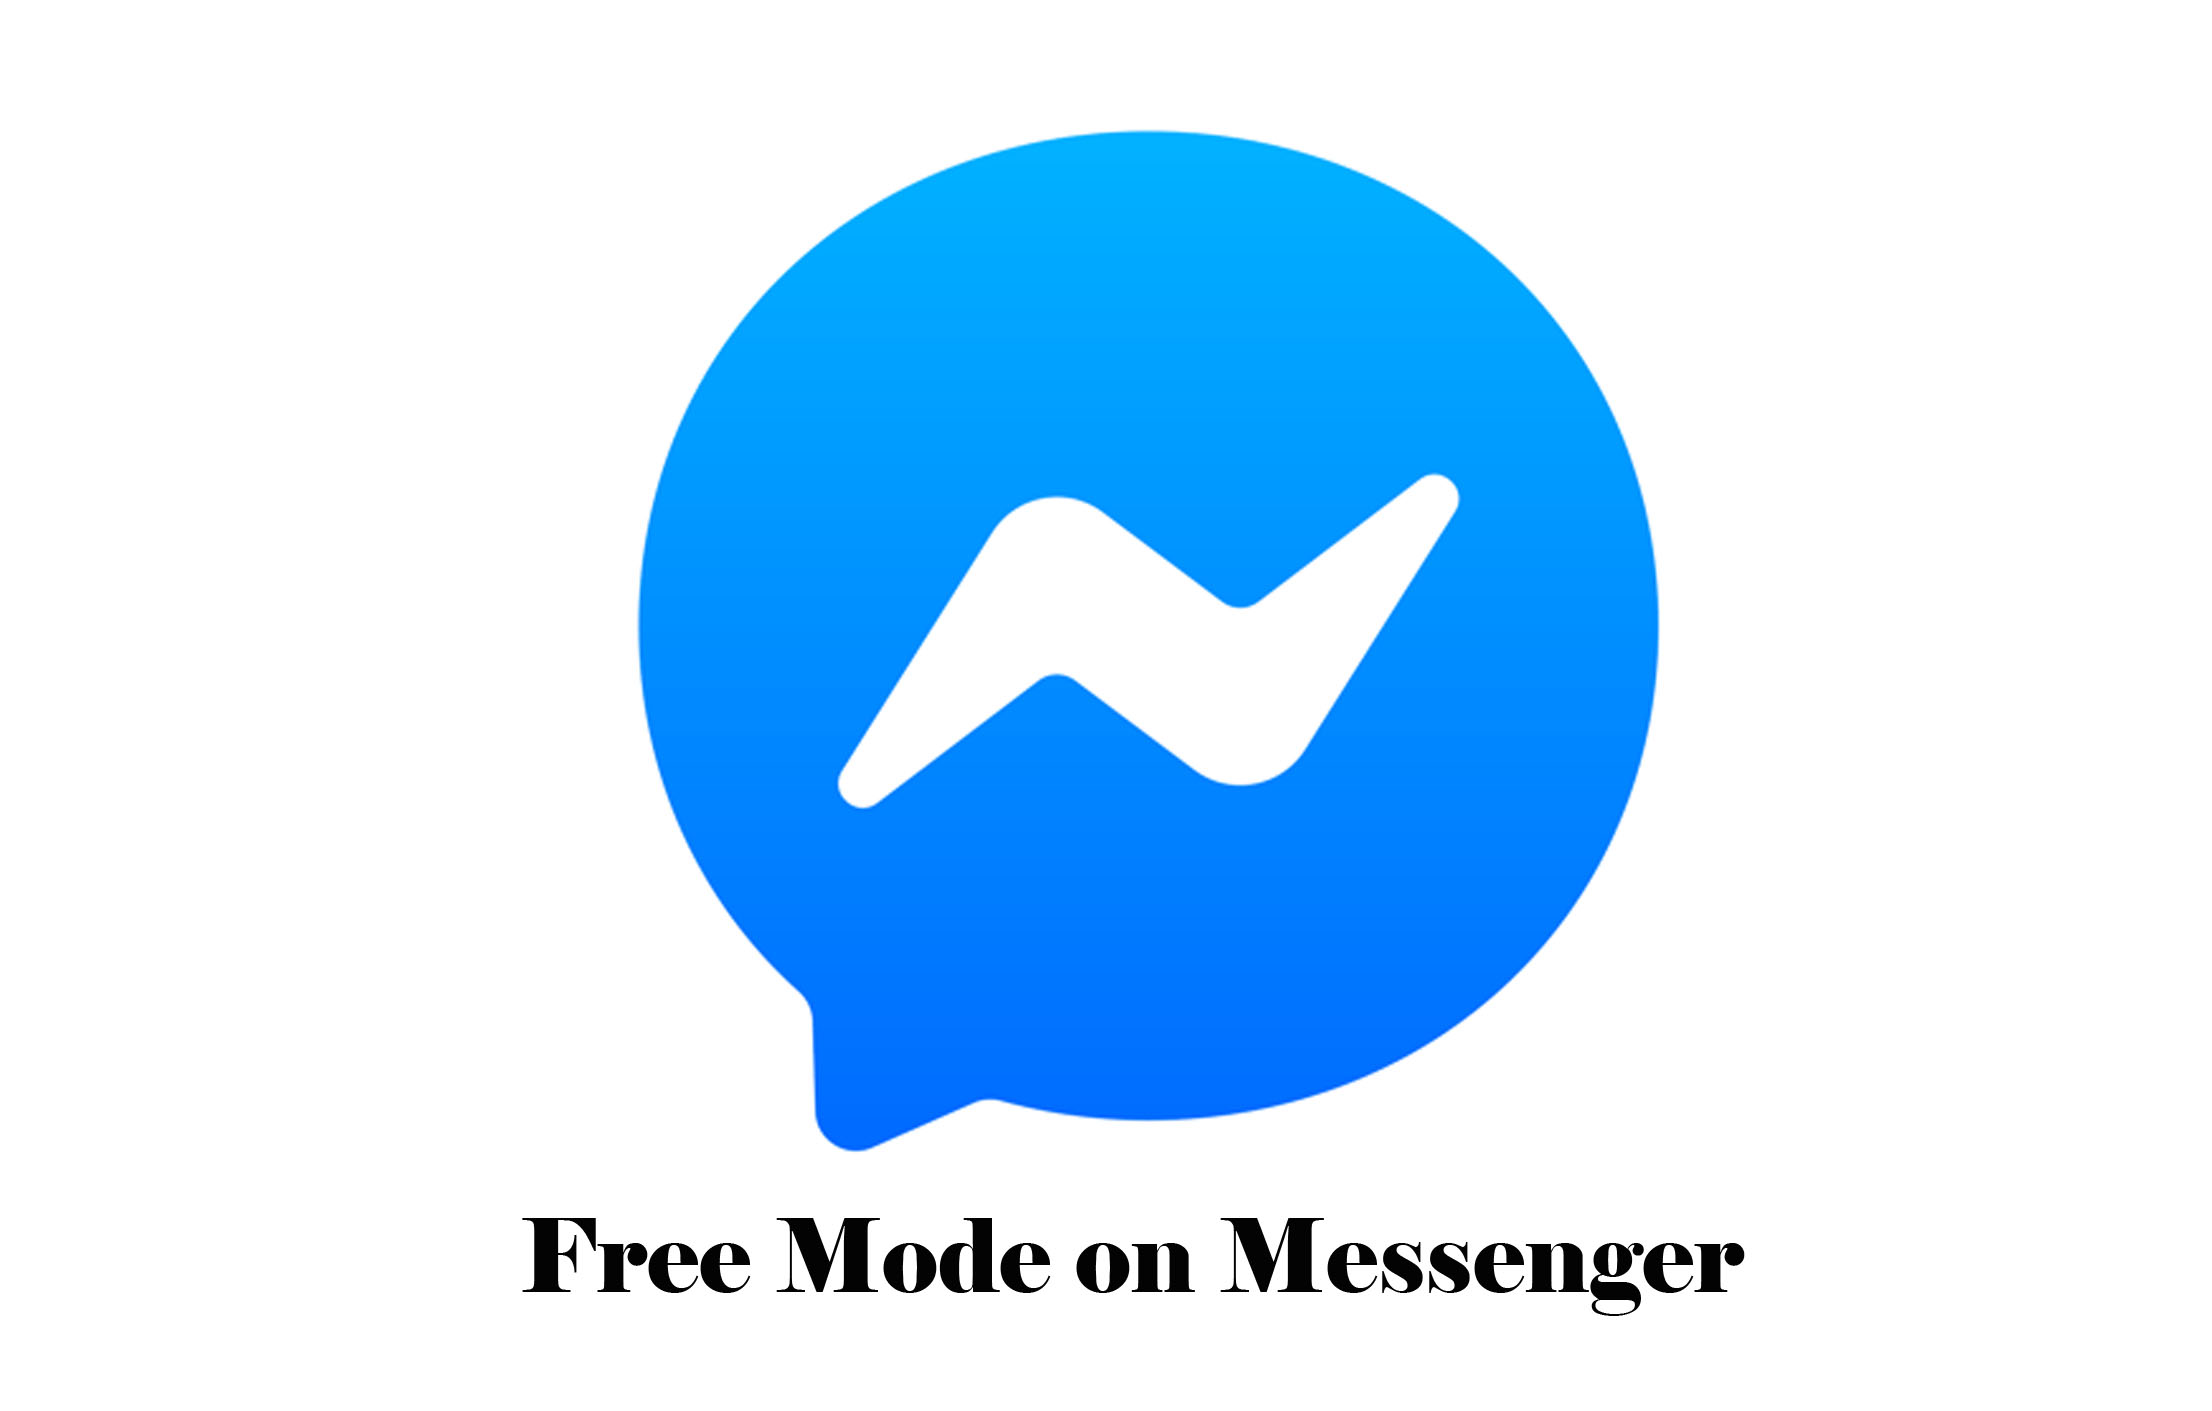 Free Mode On Messenger Free Mode On Facebook Facebook Messenger Trendebook